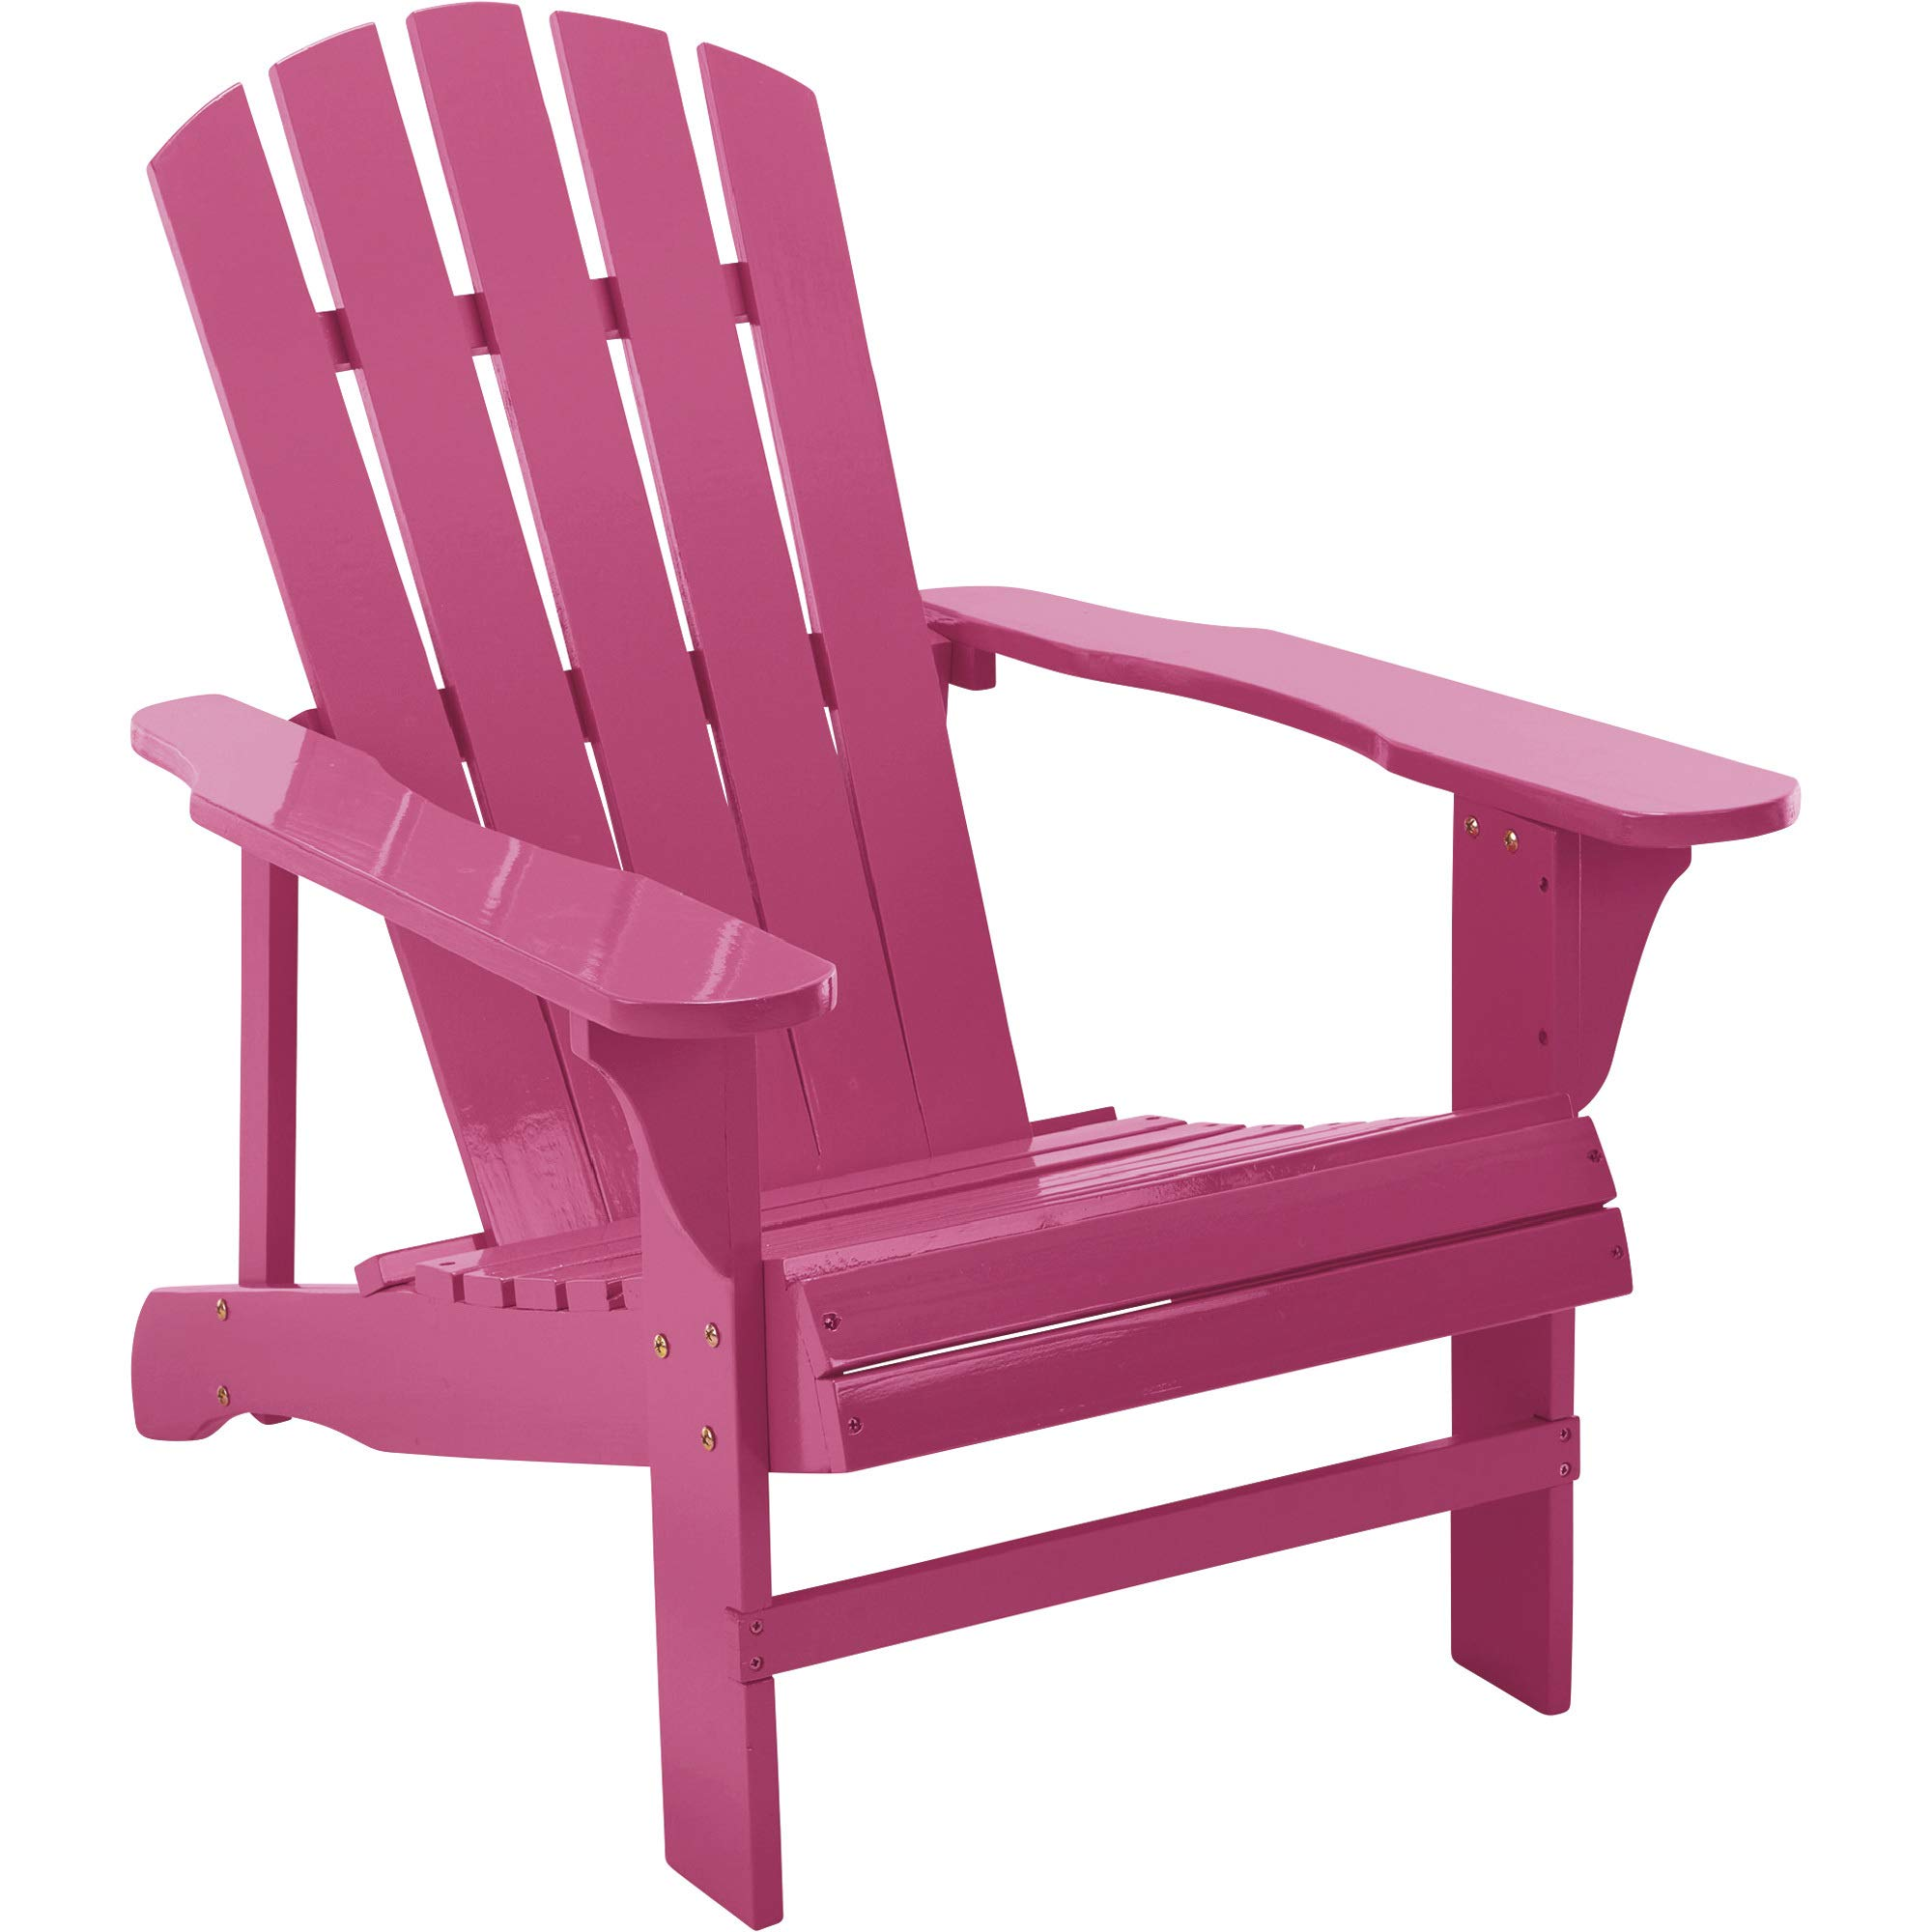 Leigh Country Classic Painted Wood Adirondack Chair - Pink by Leigh Country